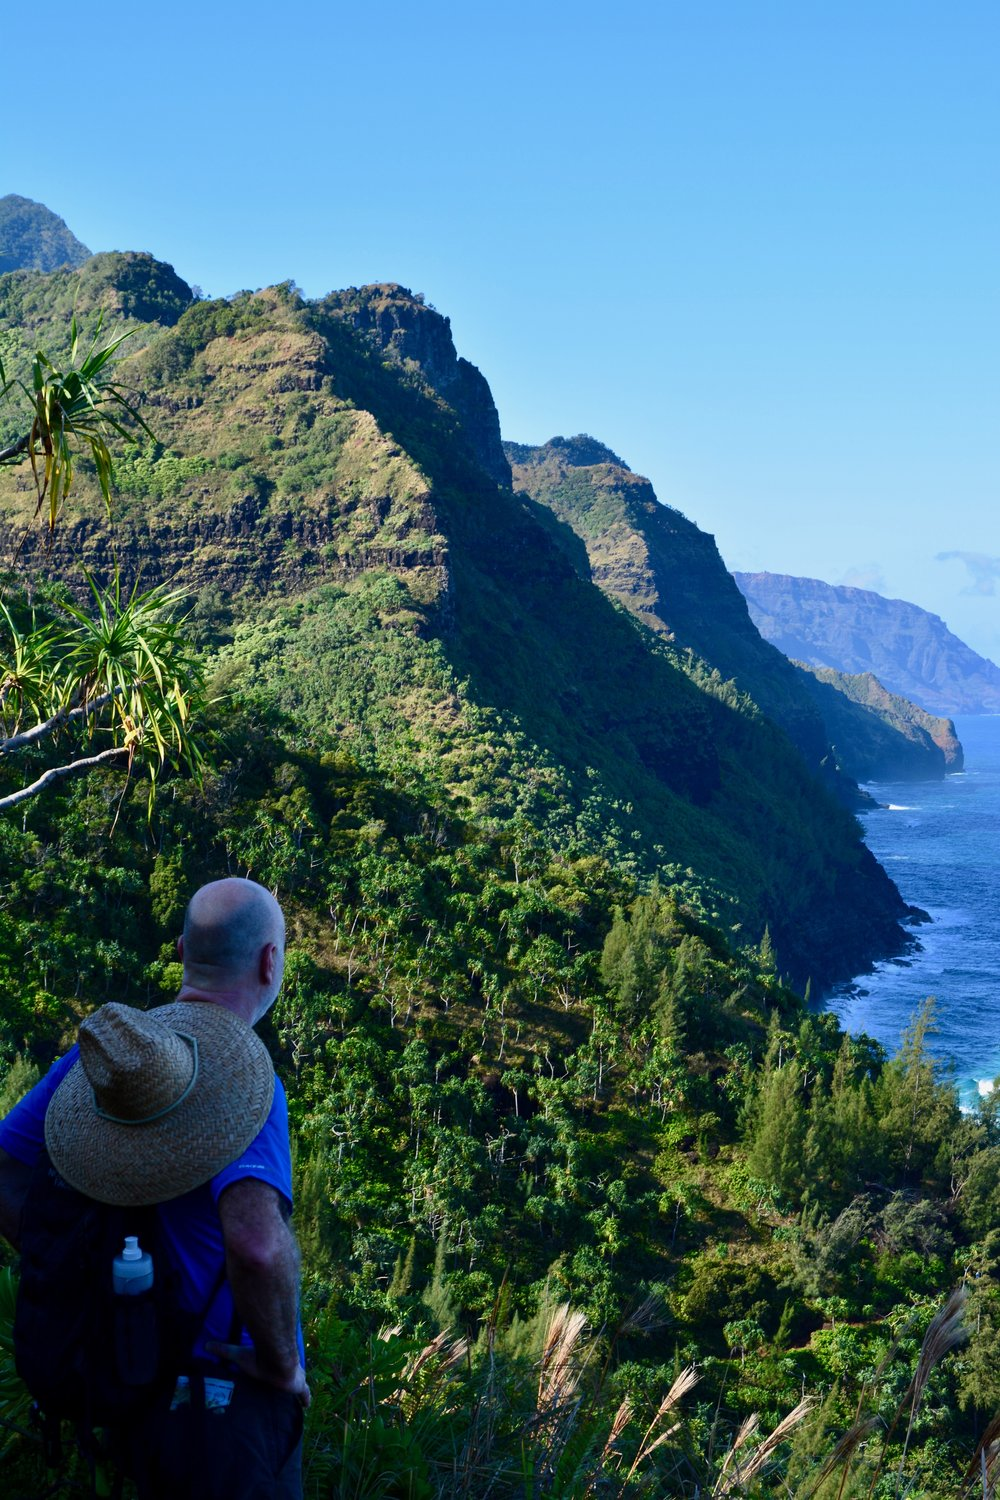 Dave in awe of Na Pali Coast.